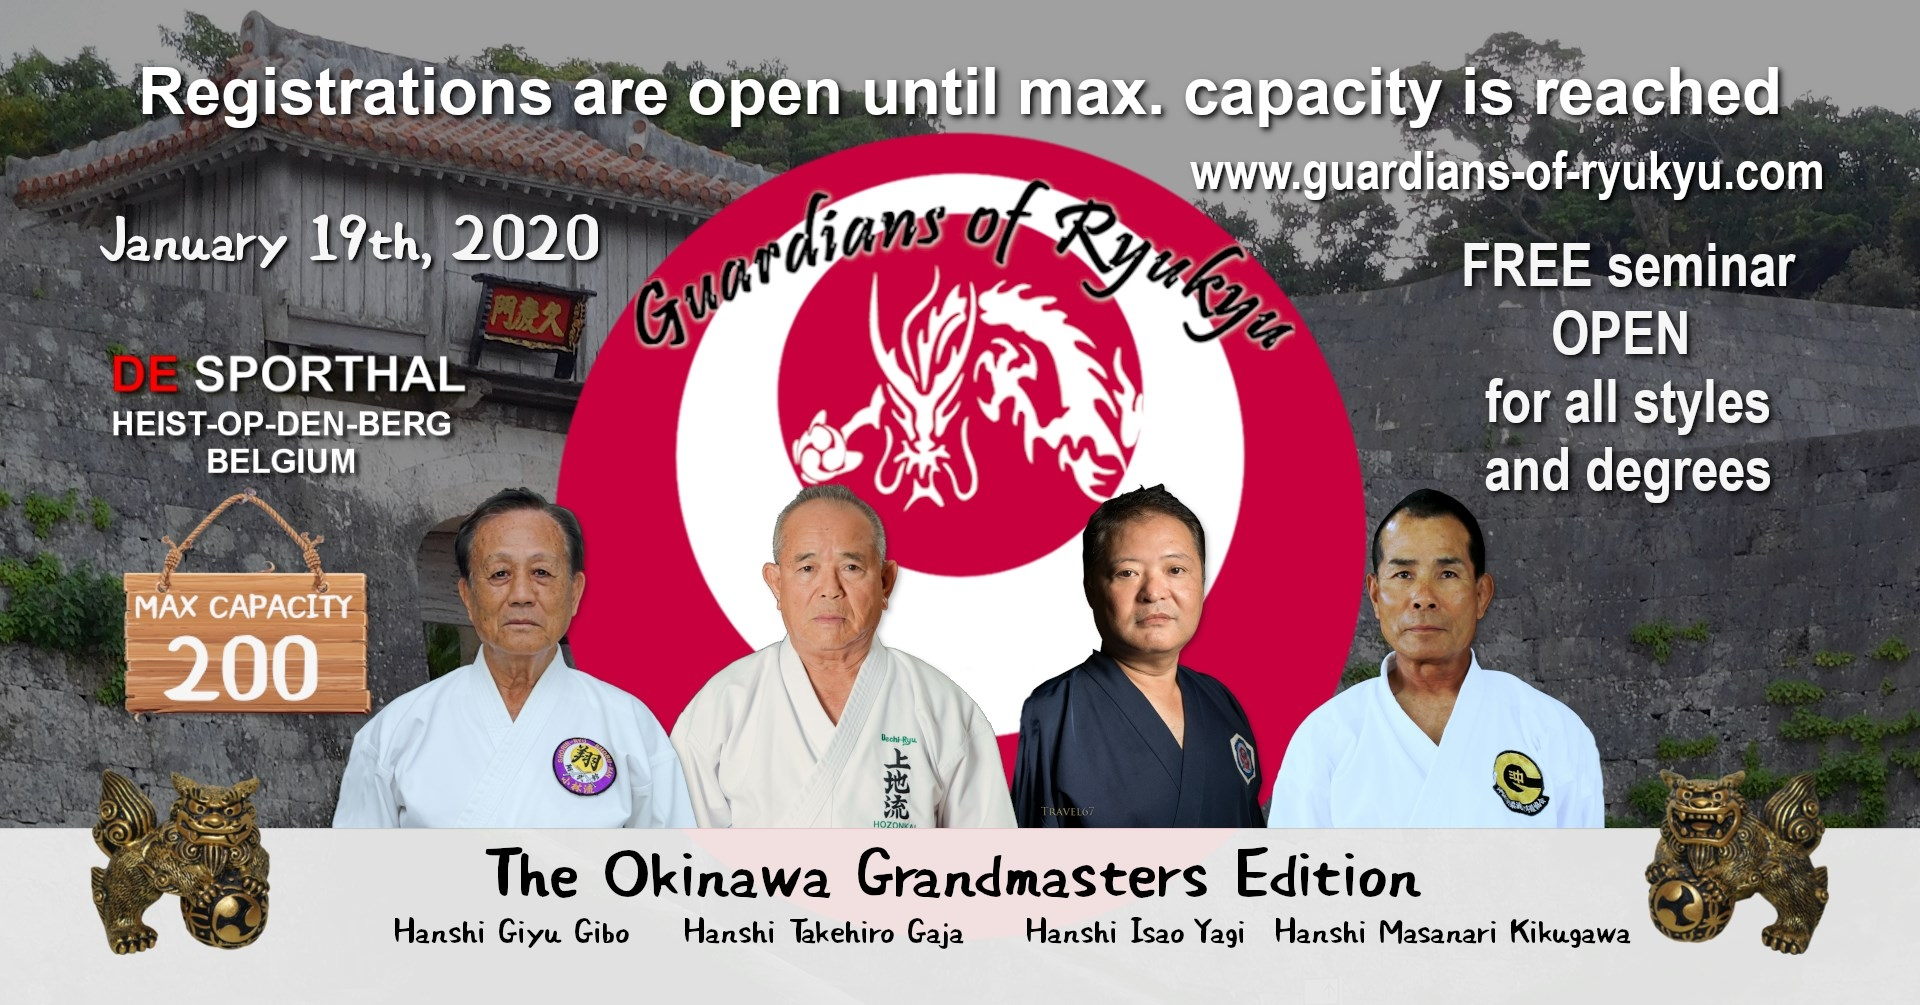 Gardians of Ryu Kyu Grand Masters Edition 17 January 2020